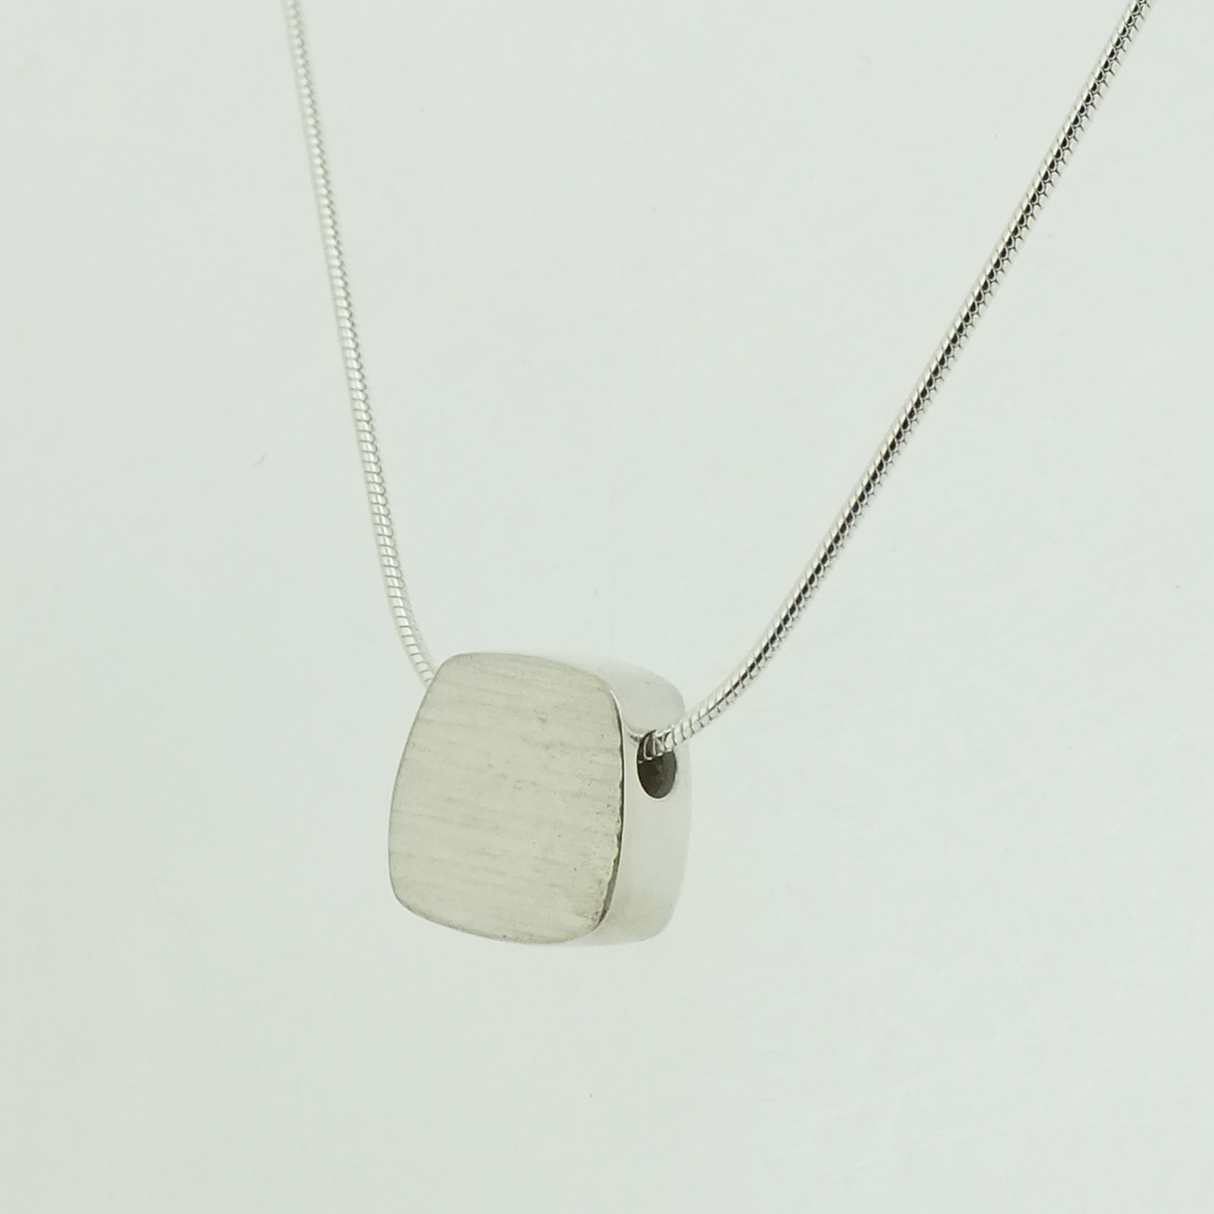 Fower Neukit Box pendant in textured sterling silver